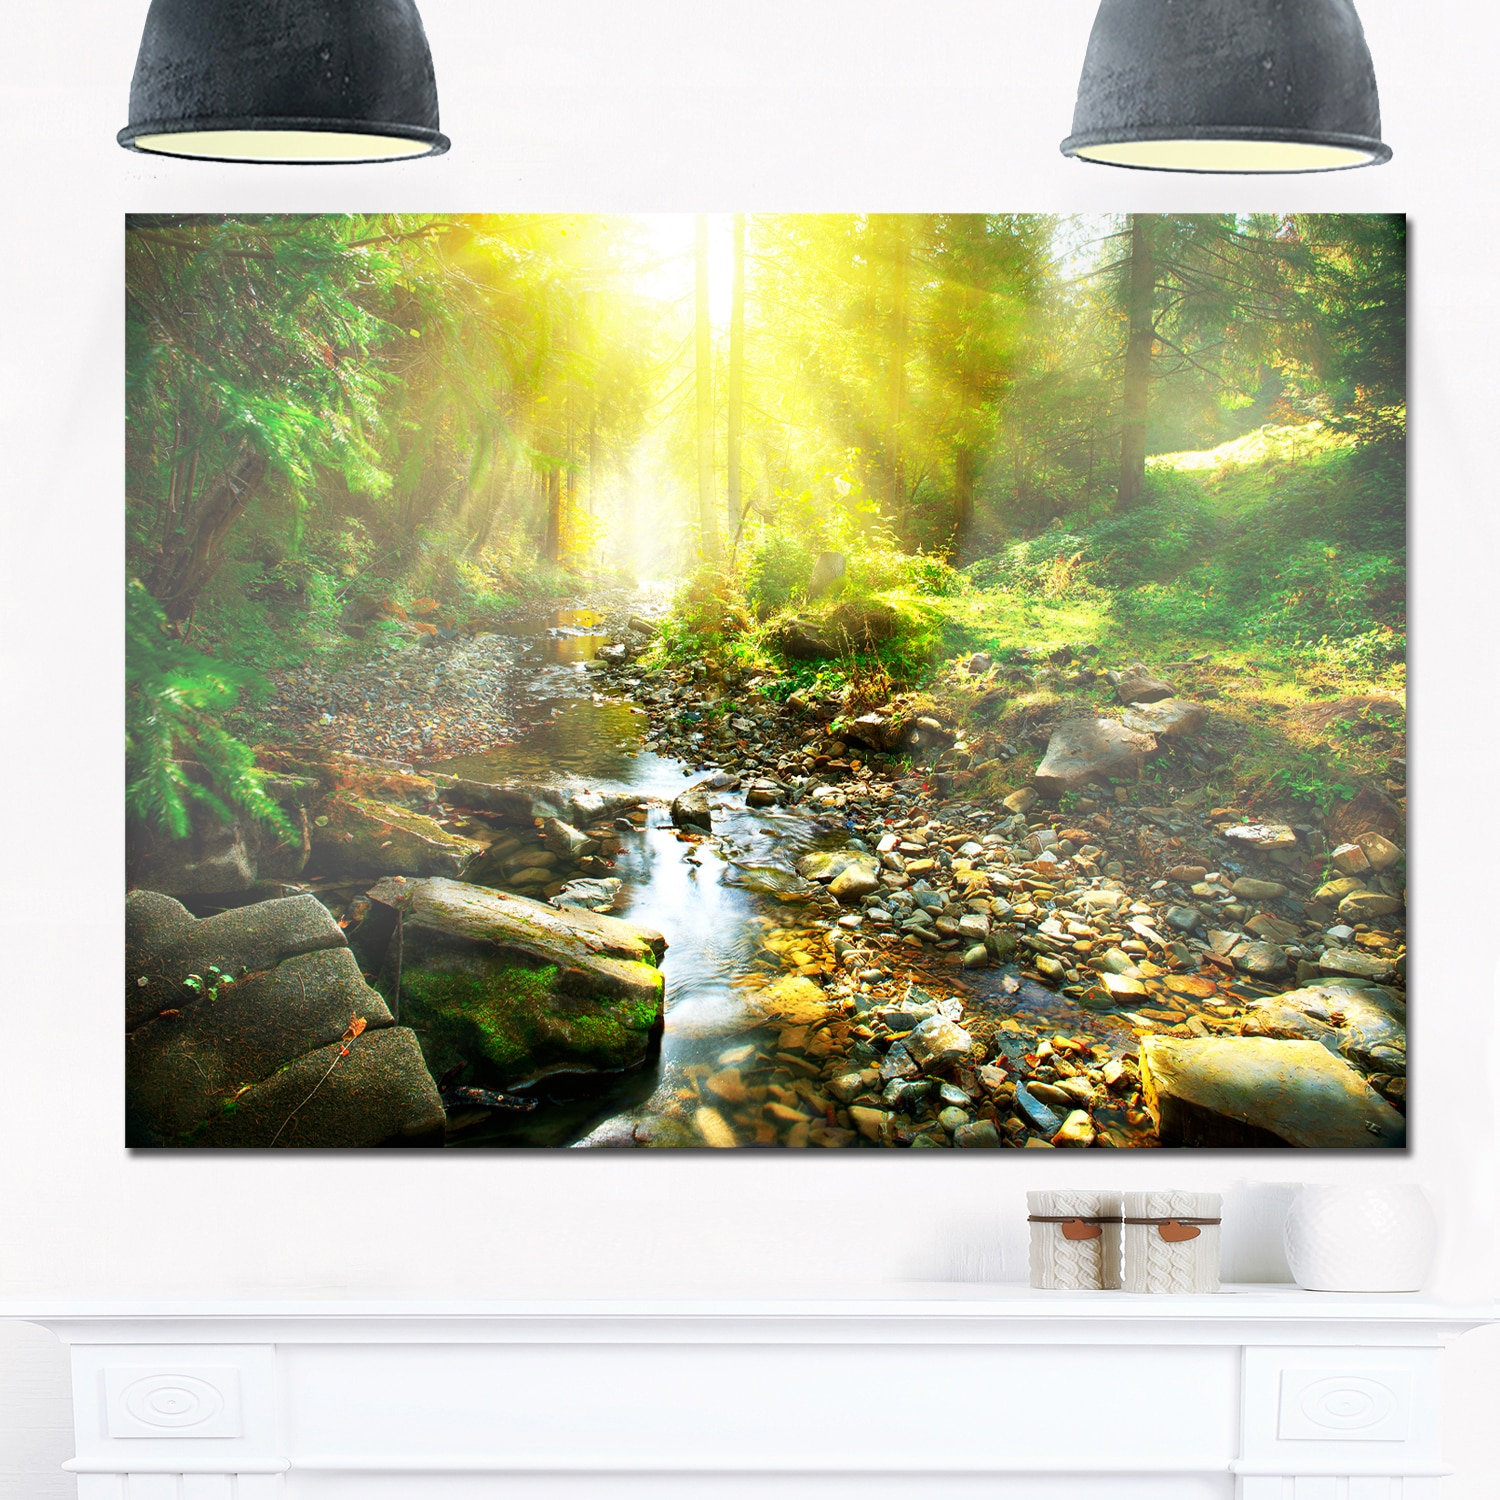 Mountain Stream in Forest - Landscape Photo Glossy Metal Wall Art ...